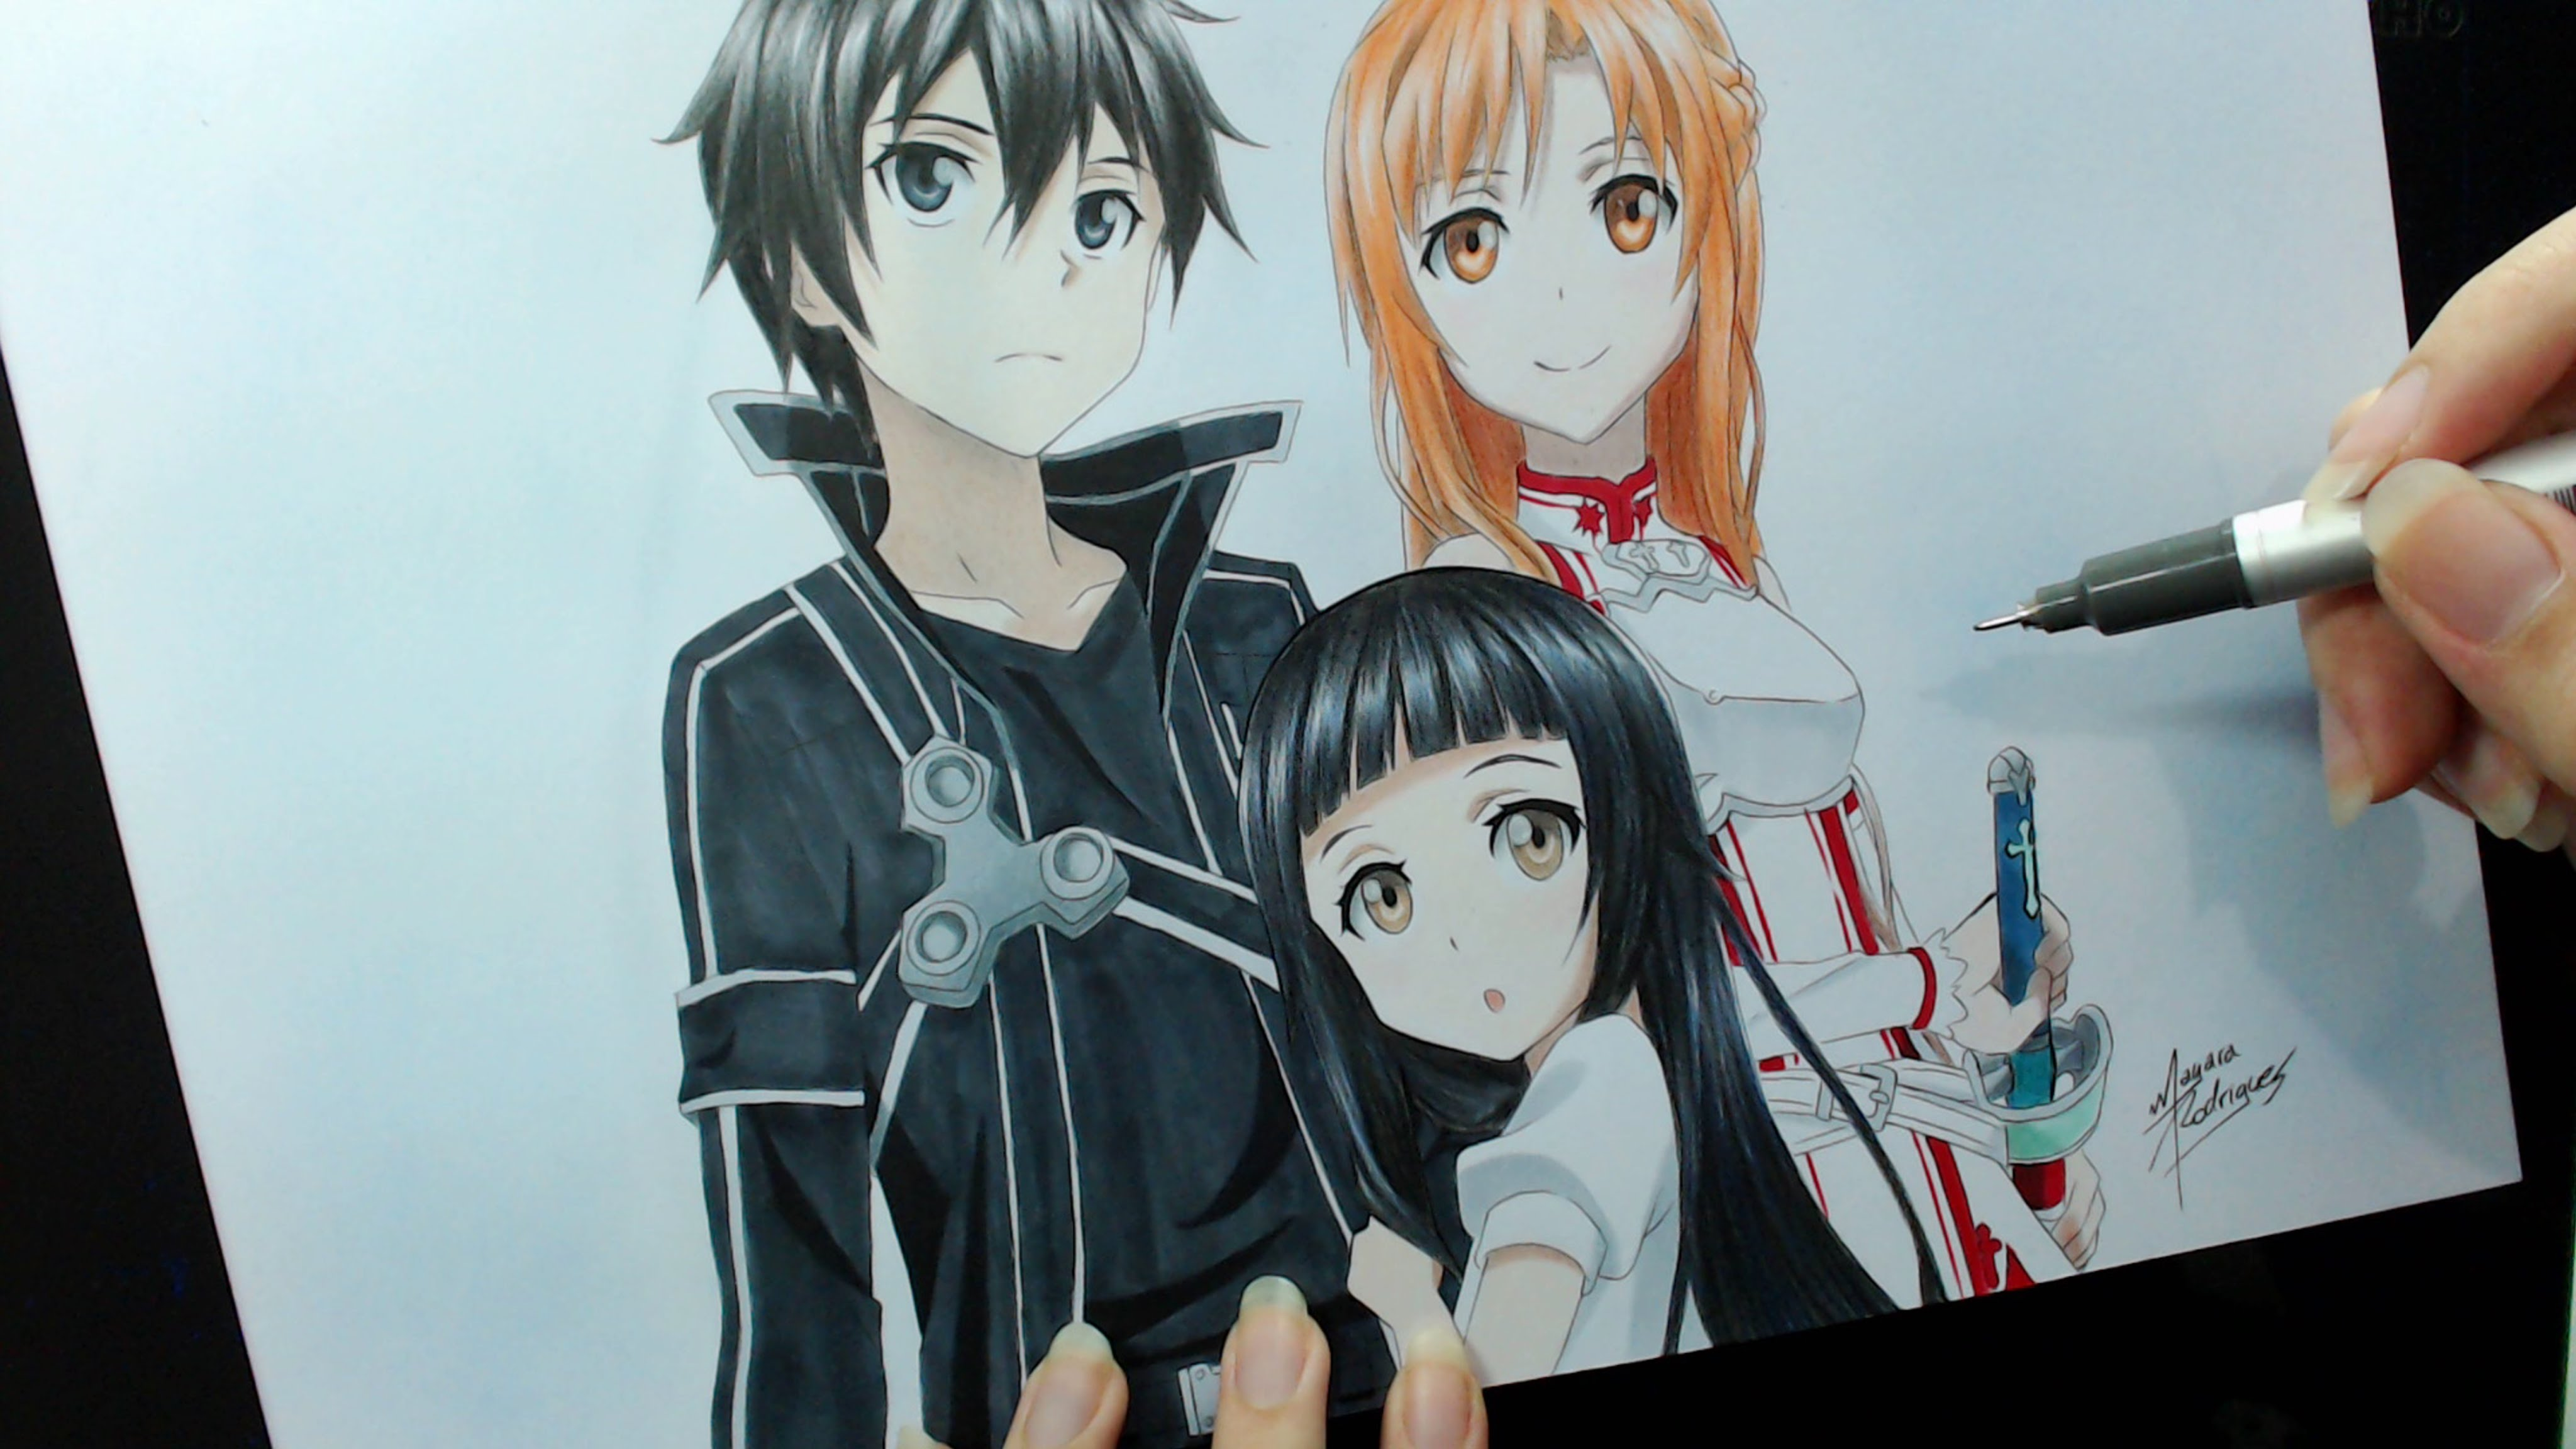 How To Draw Kirito And Asuna From Sword Art Online